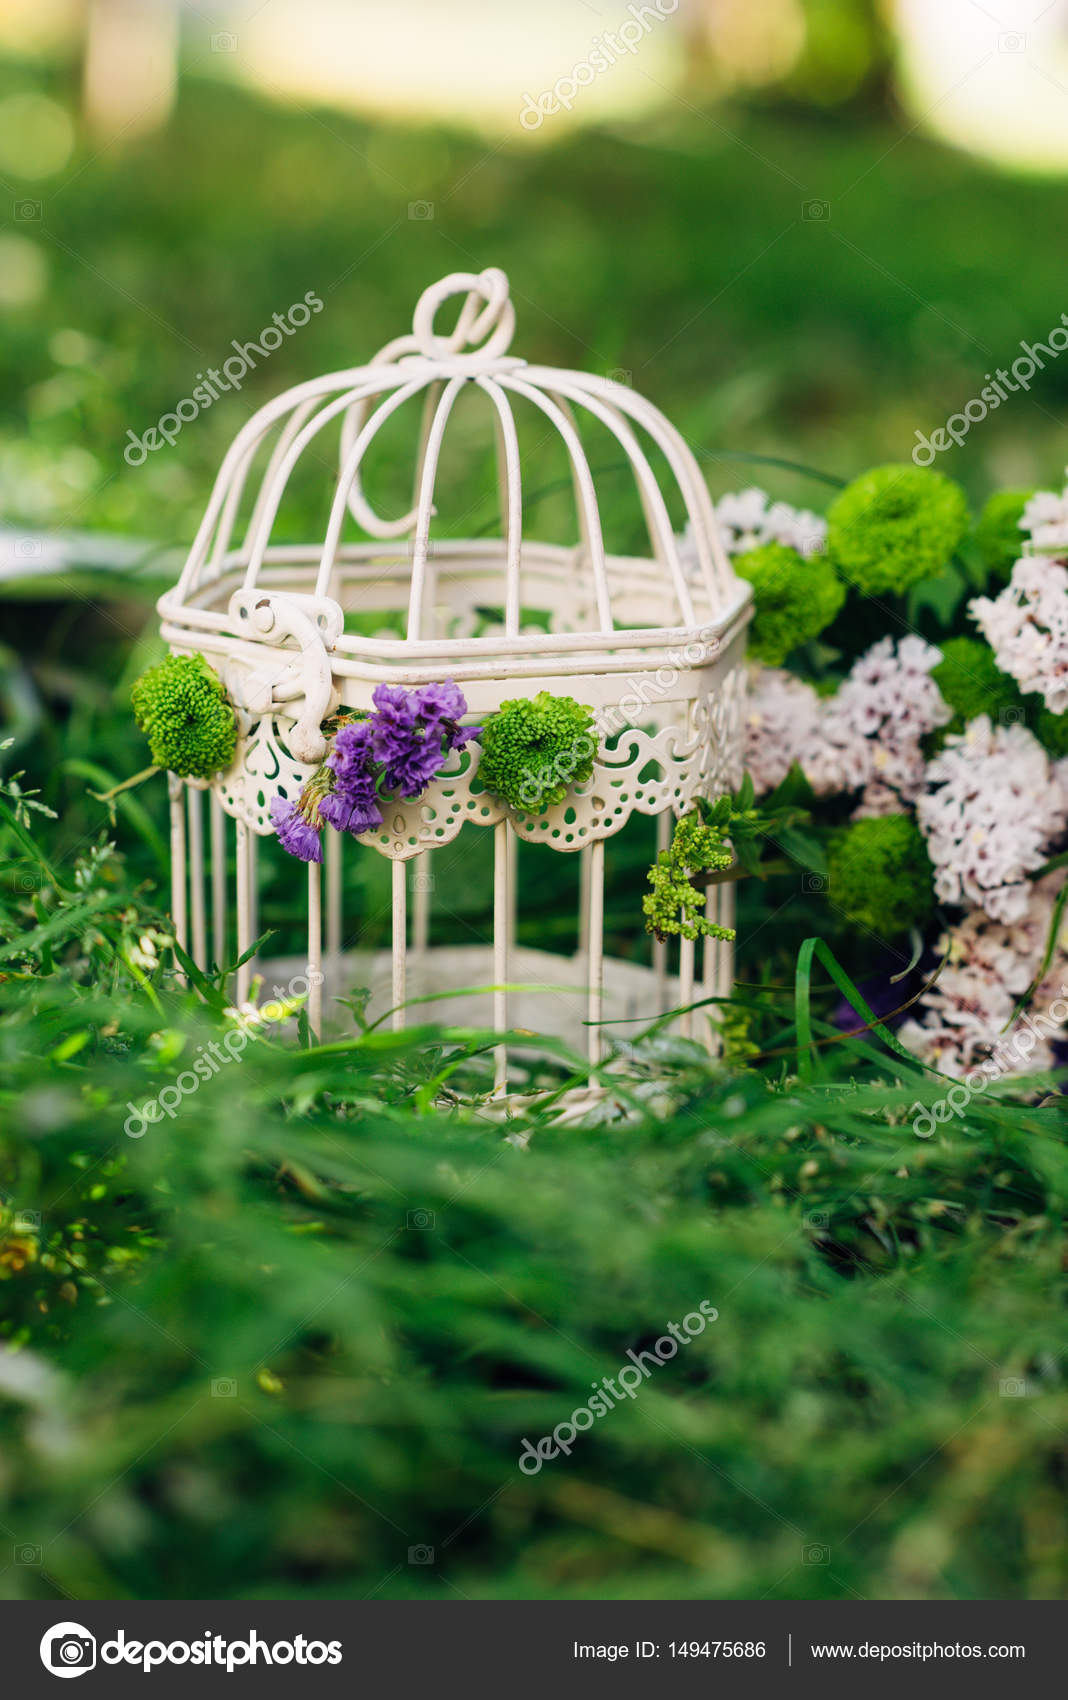 Garden party decorations. Vintage bird cages with flowers inside ...